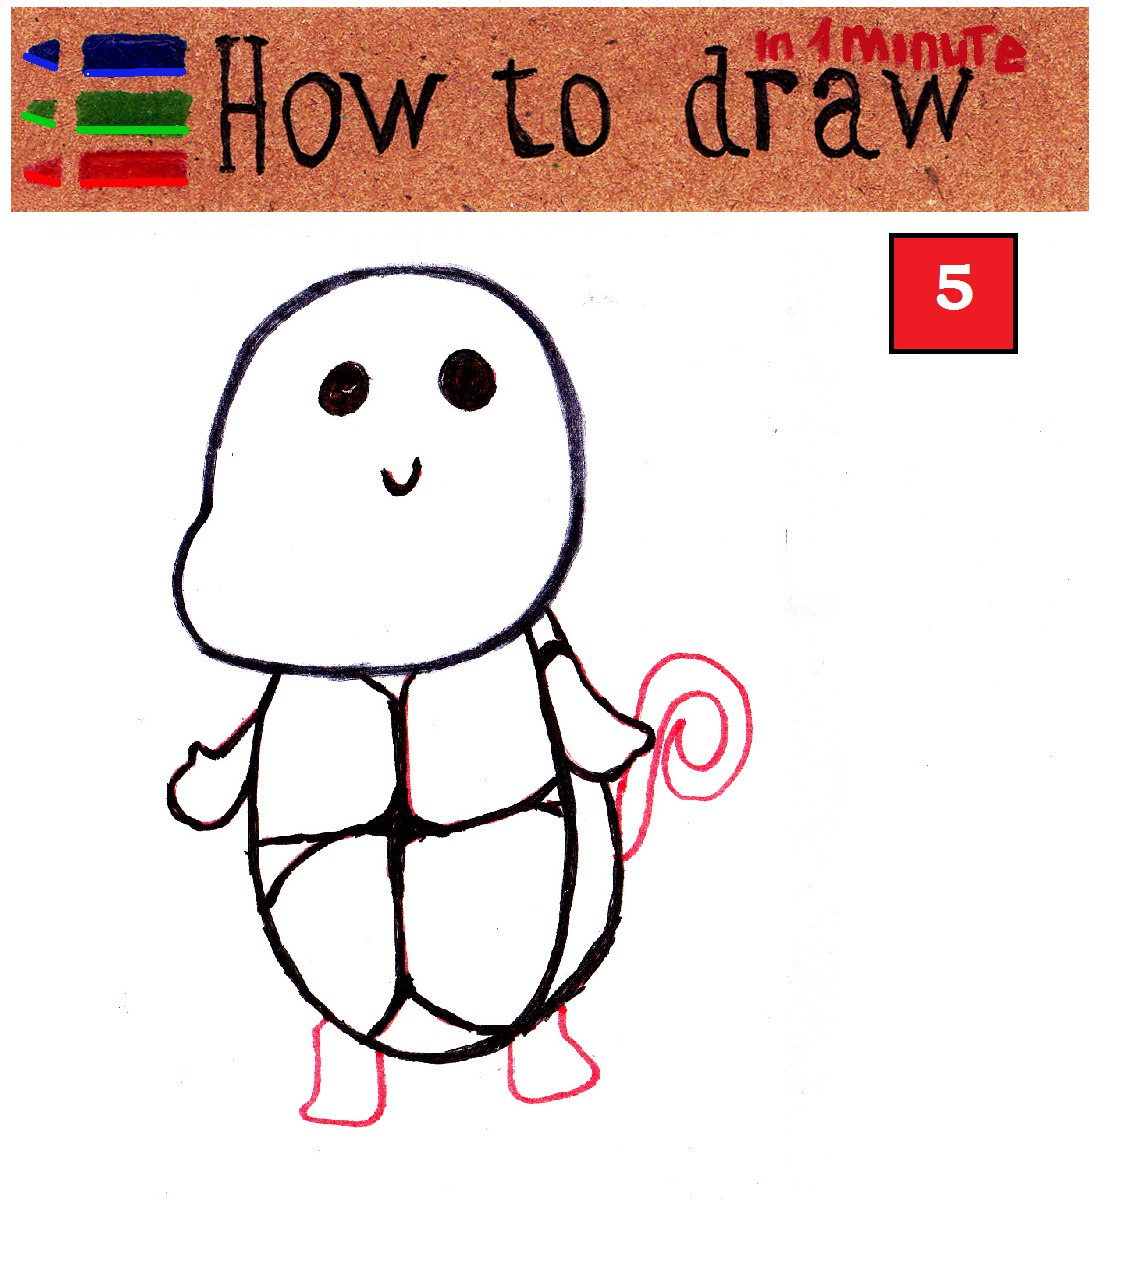 How to draw cute Pokemon Squirtle step by step